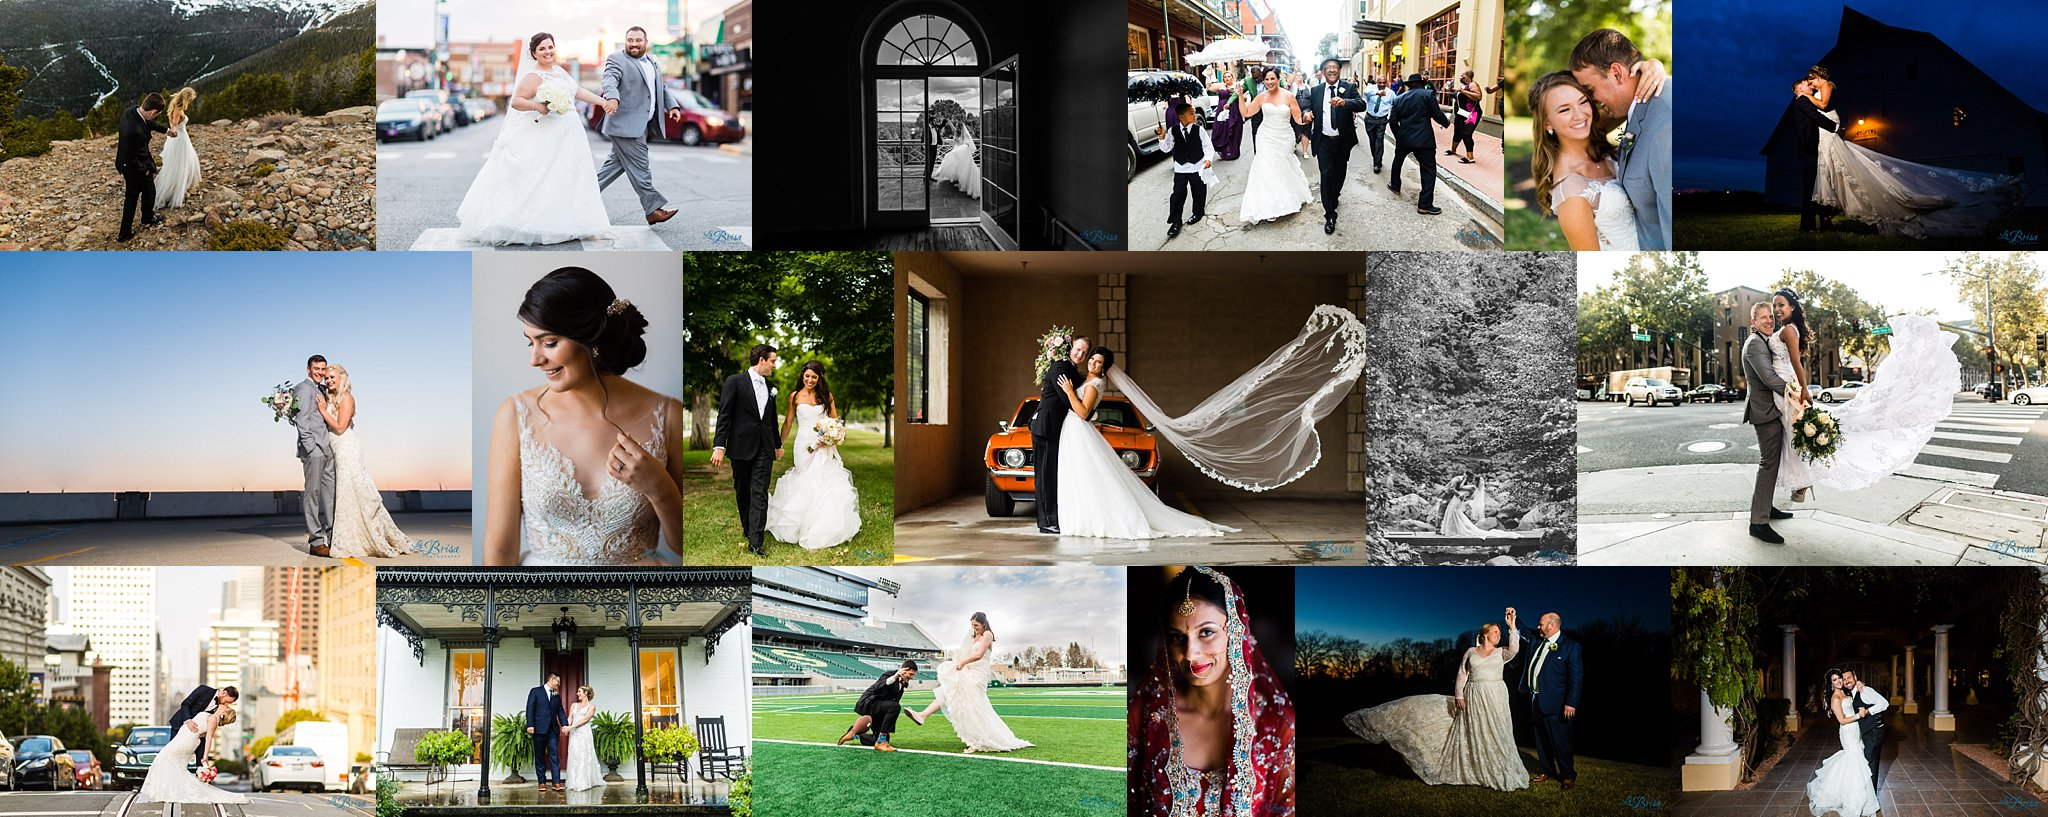 Wedding Photography Pose Collage